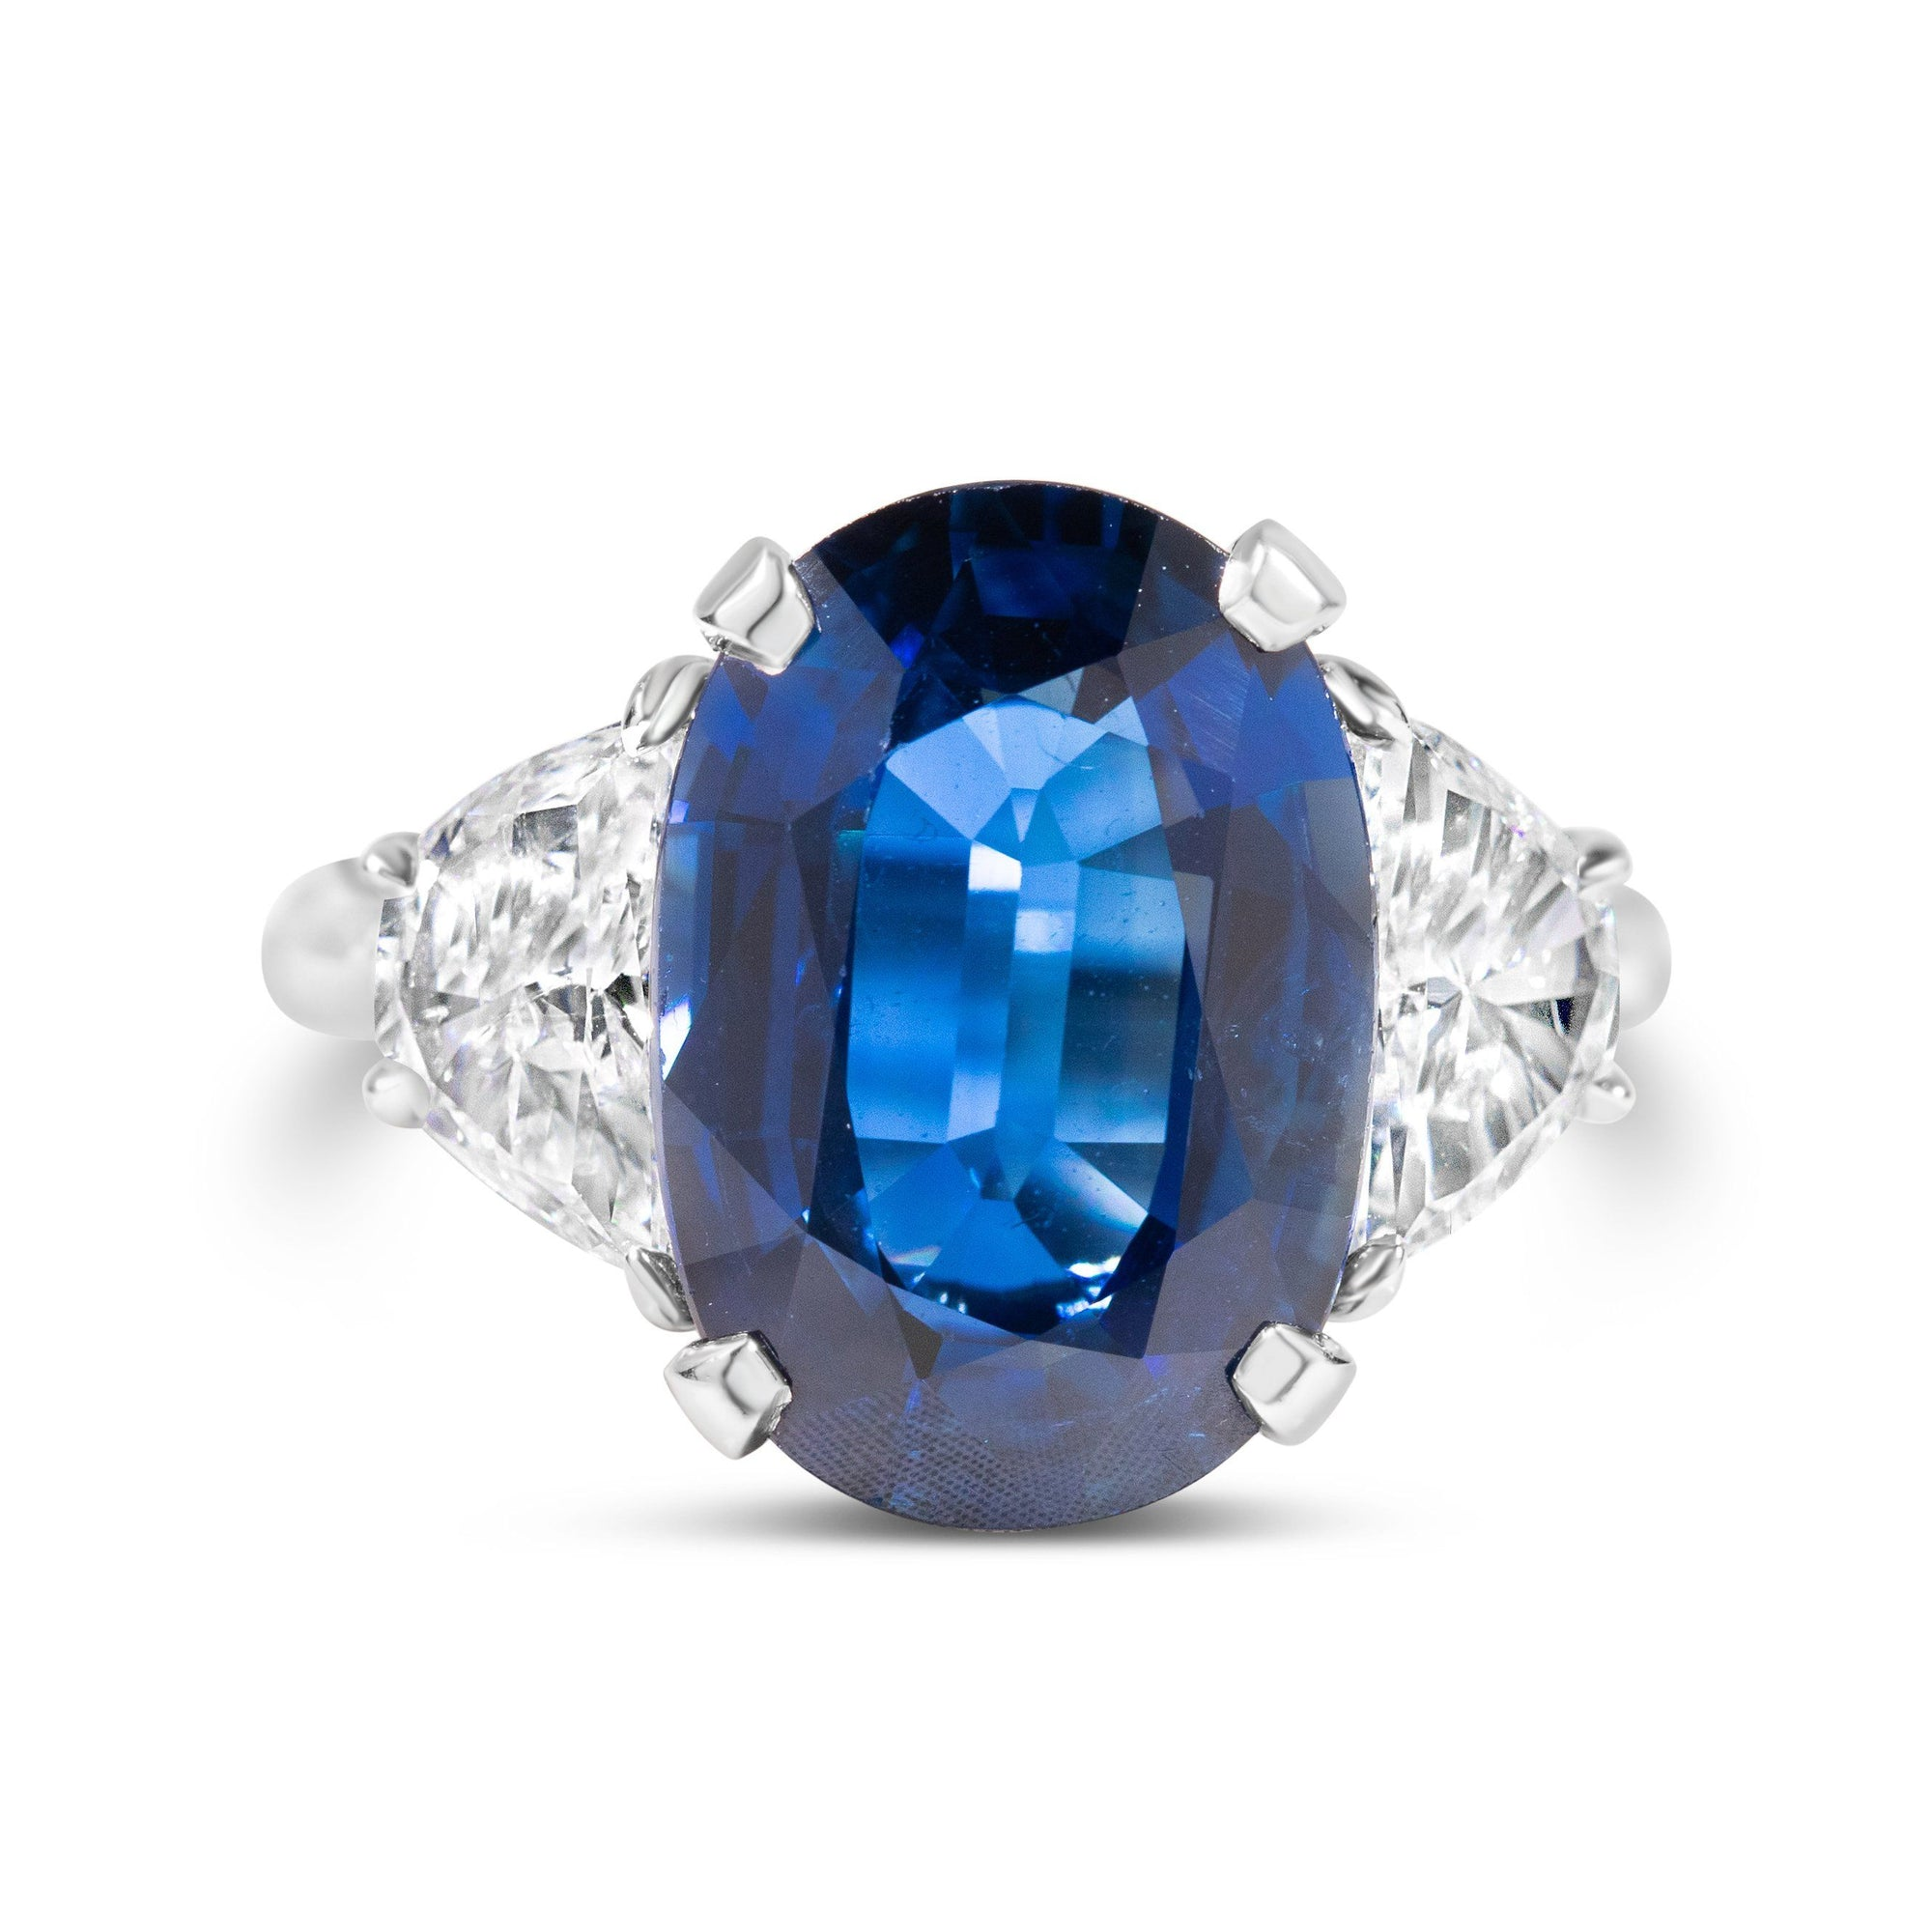 7.49ct Oval Cut Sapphire with Half Moon Side Stones